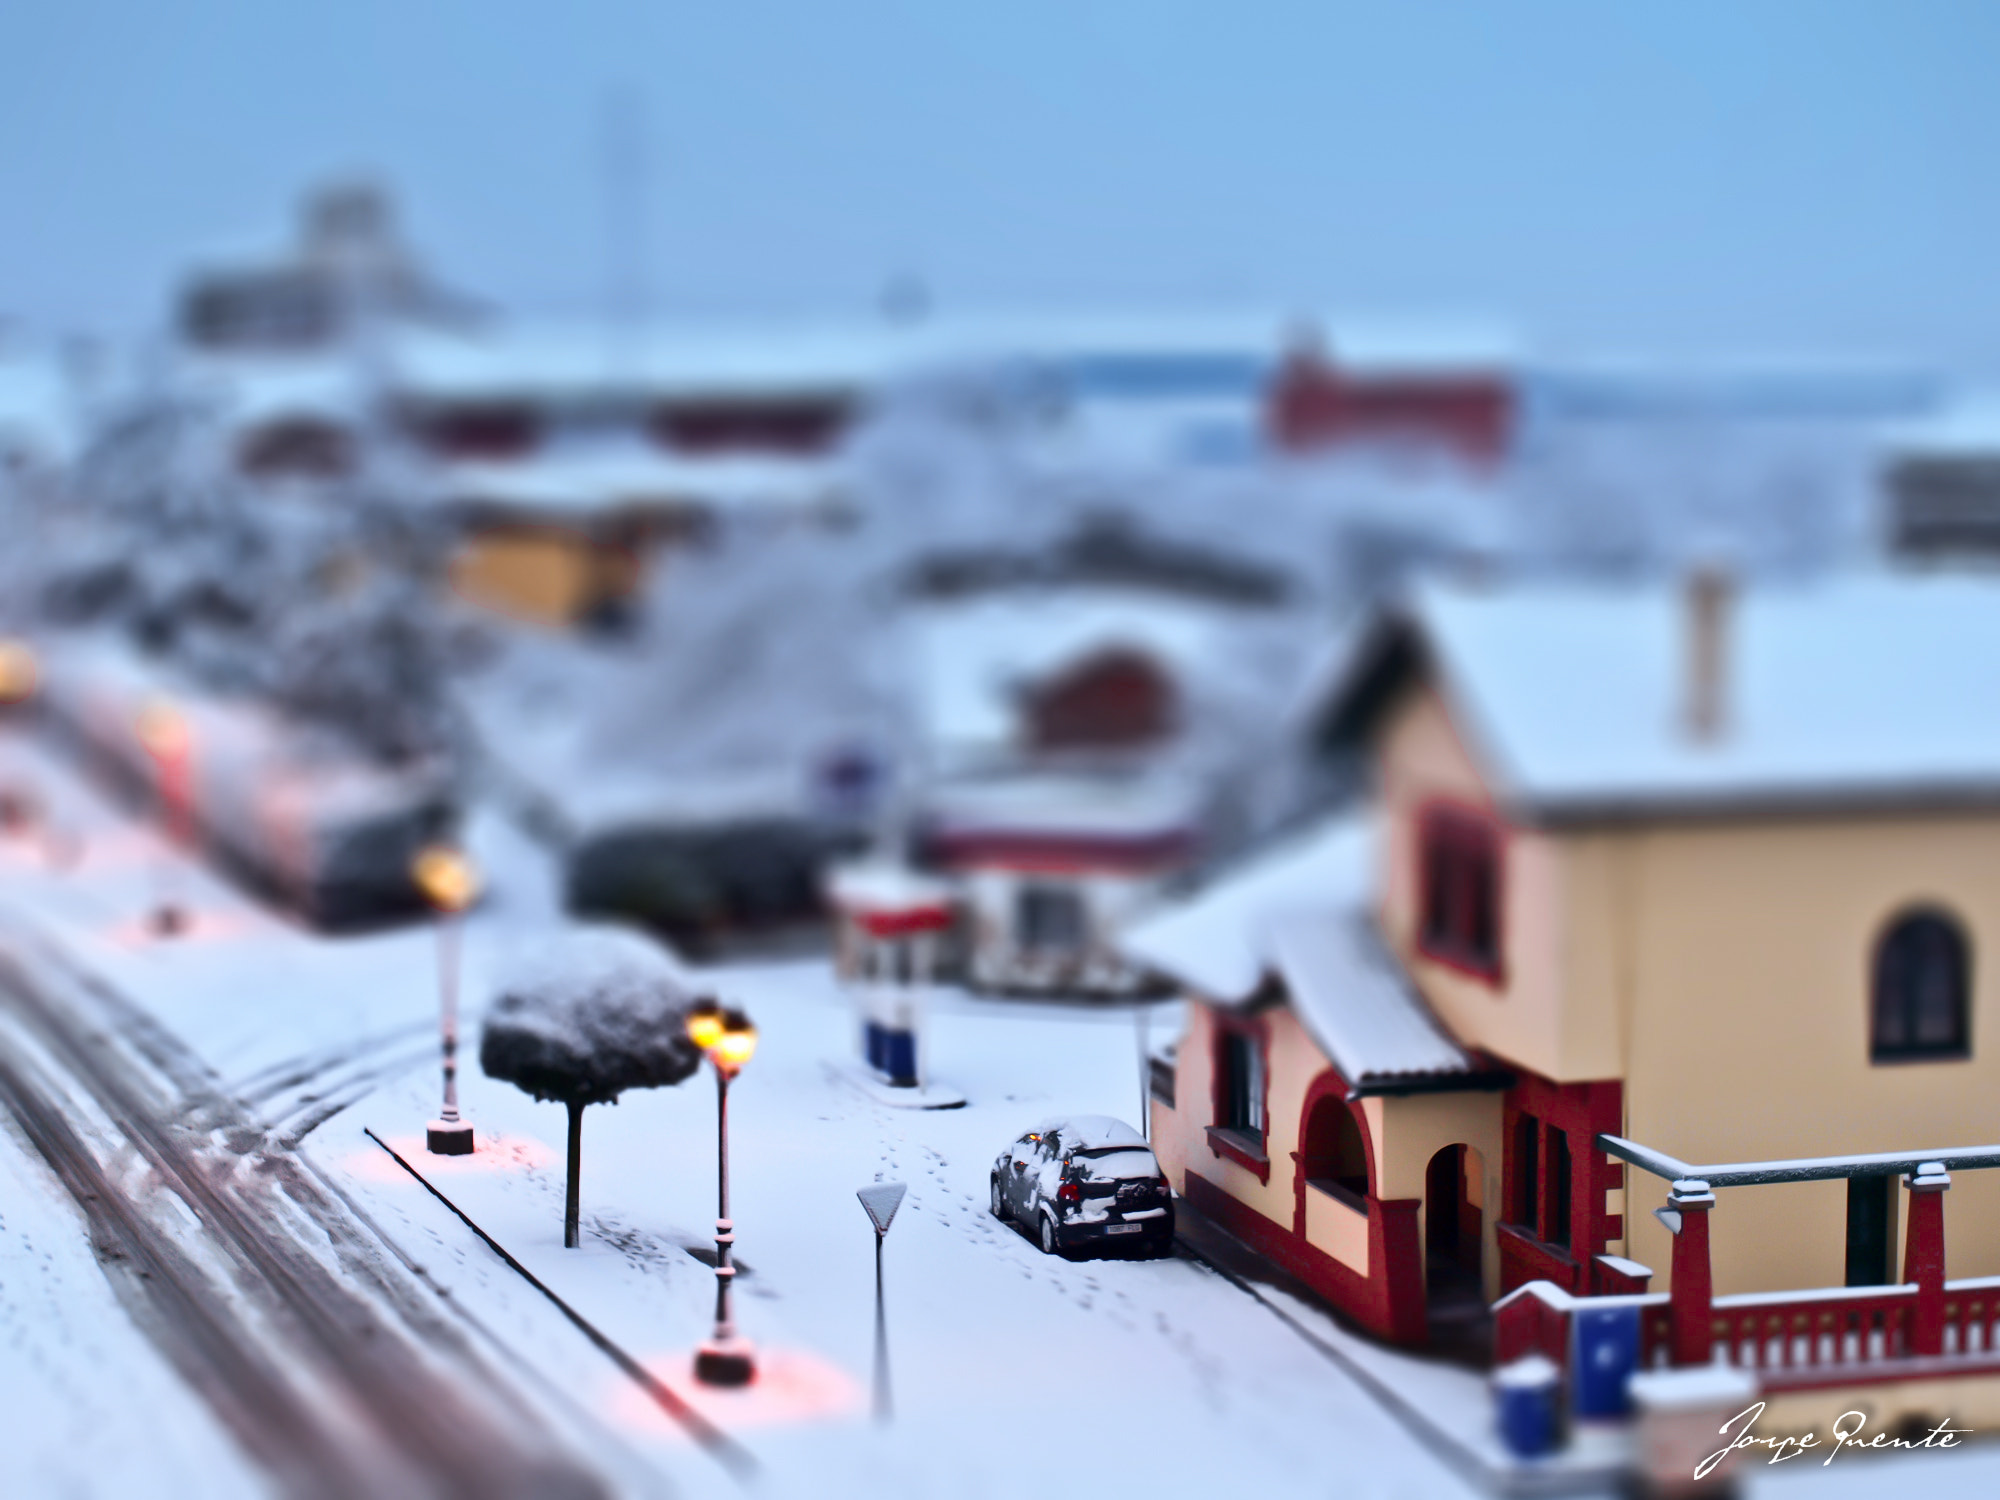 Photograph Tilt-shift by Jorge Puente on 500px